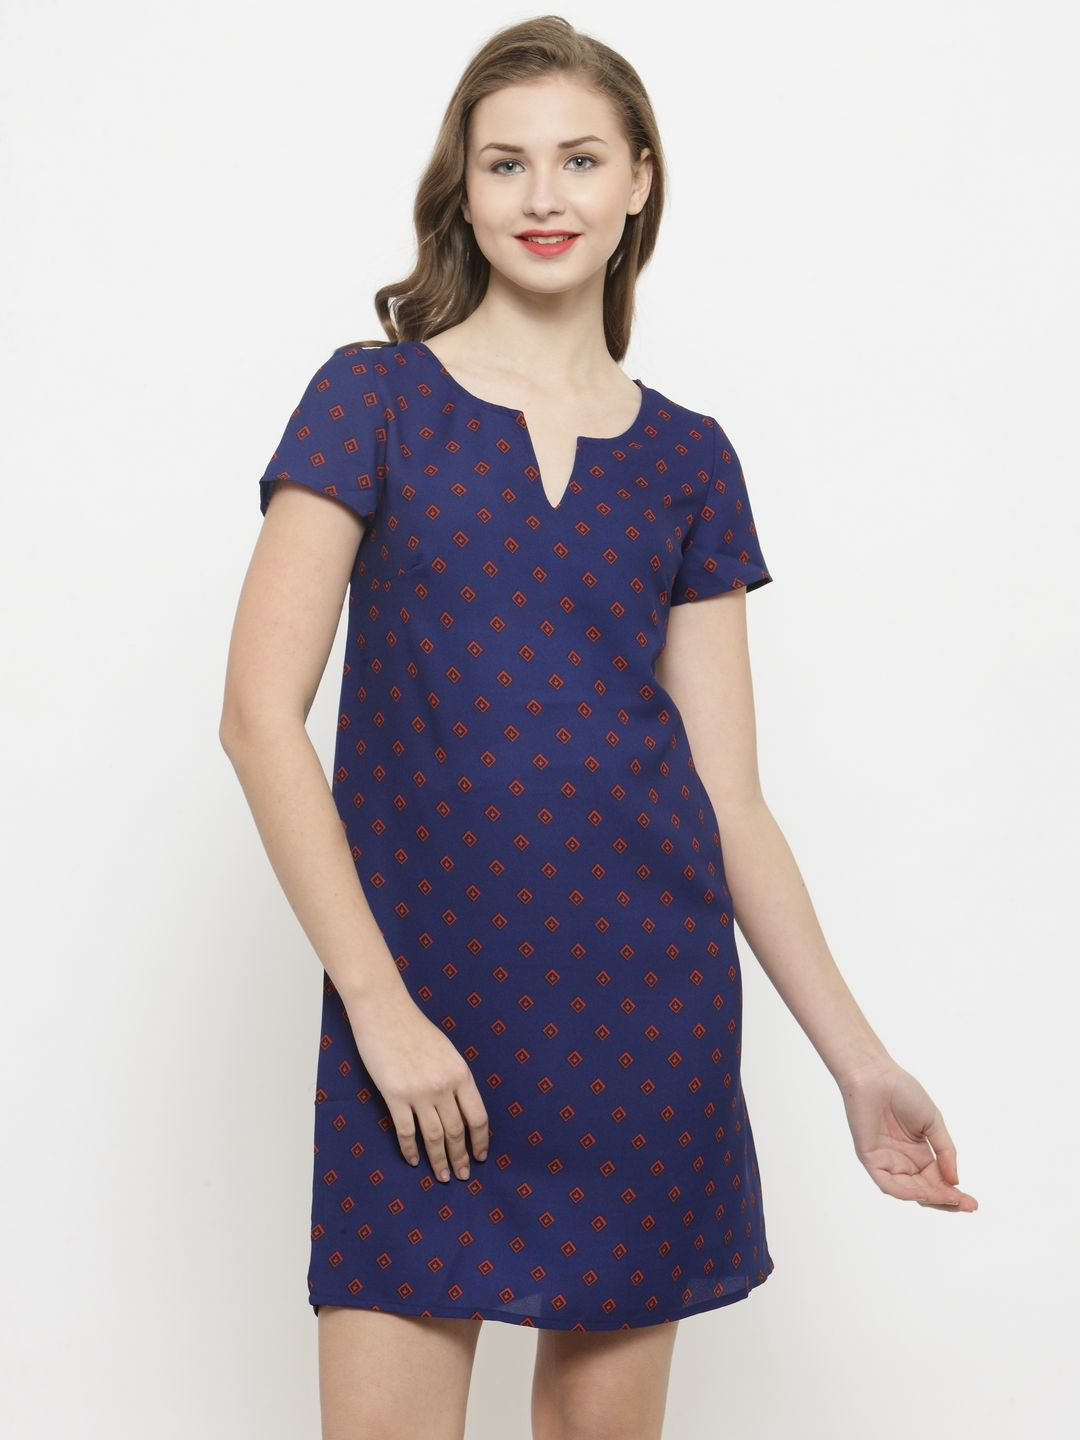 Querida Blue AOP Germetric print Dress